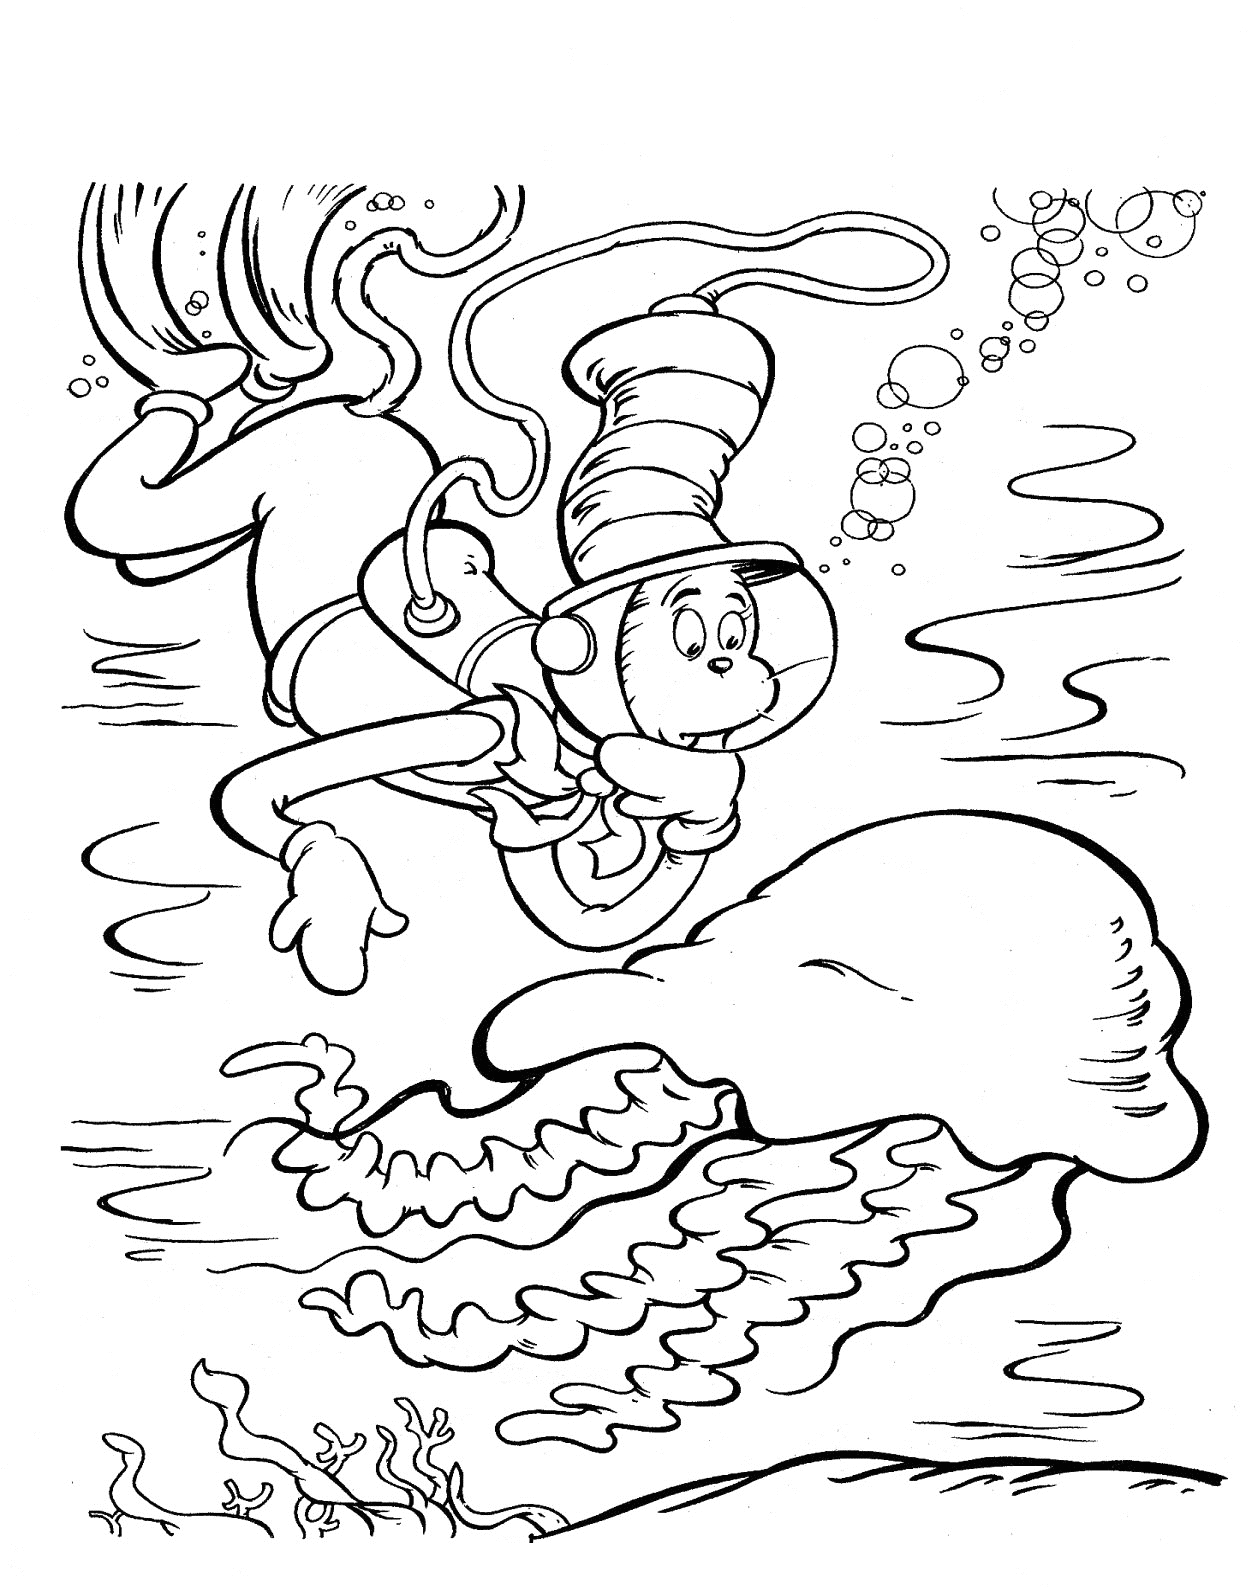 Cat In the Hat Coloring Pages Free Free Printable Cat In the Hat Coloring Pages for Kids